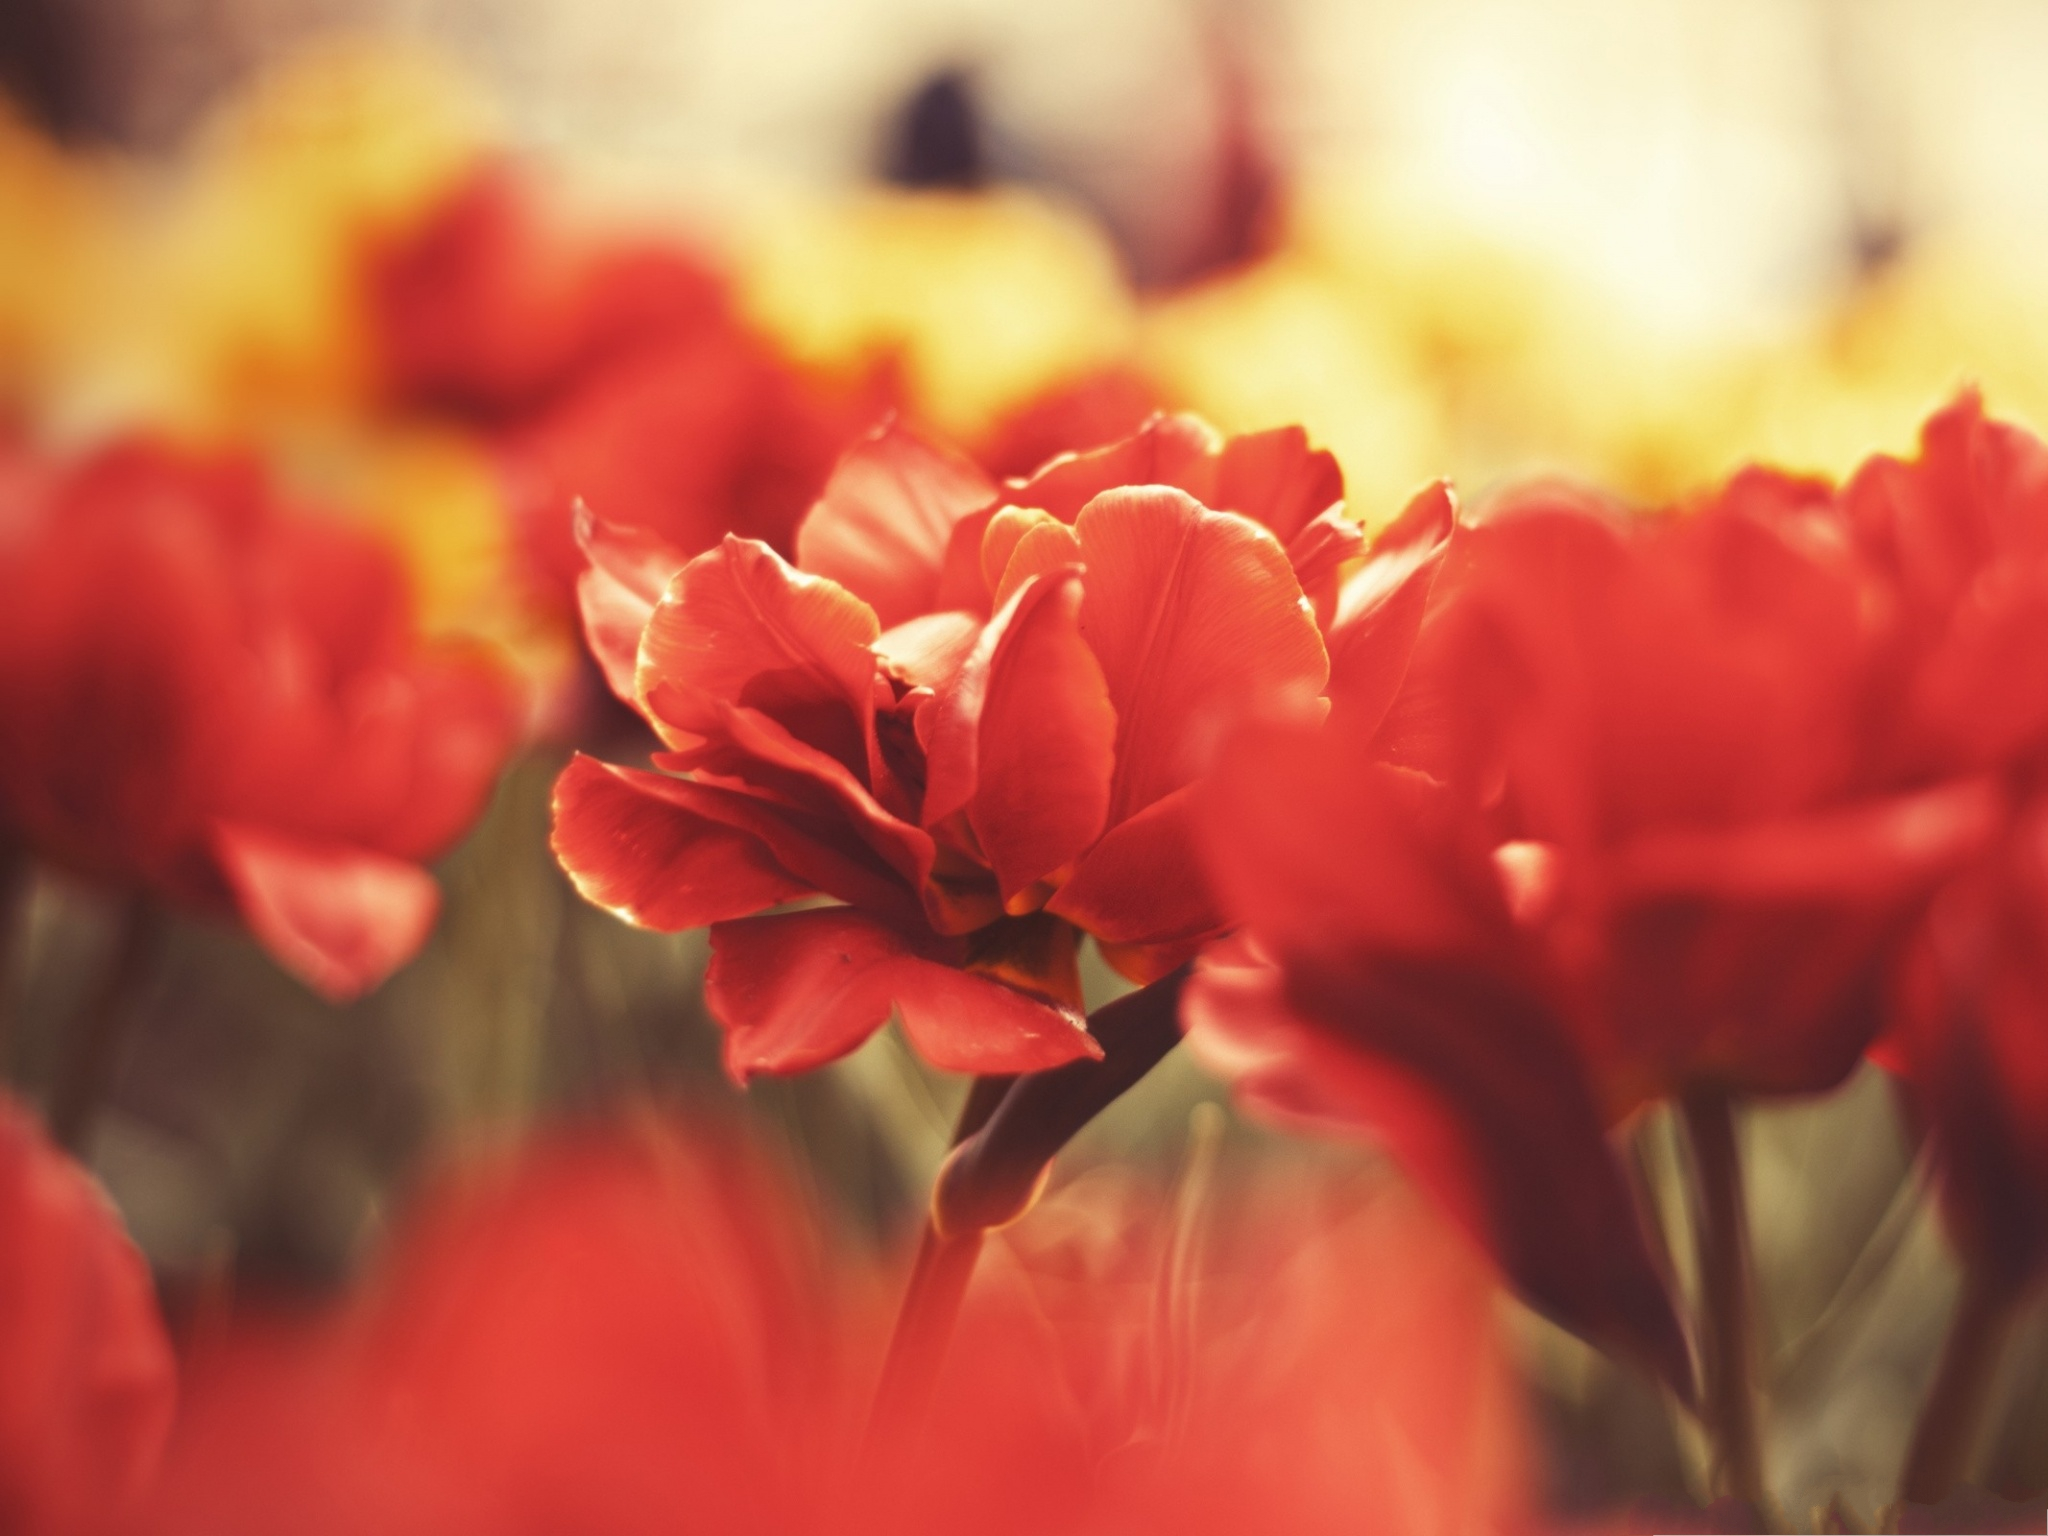 click to free download the wallpaper--Beautiful Red Flowers, Big Blooming Flowers Under Macro Focus, Amazing Scene 2048X1536 free wallpaper download